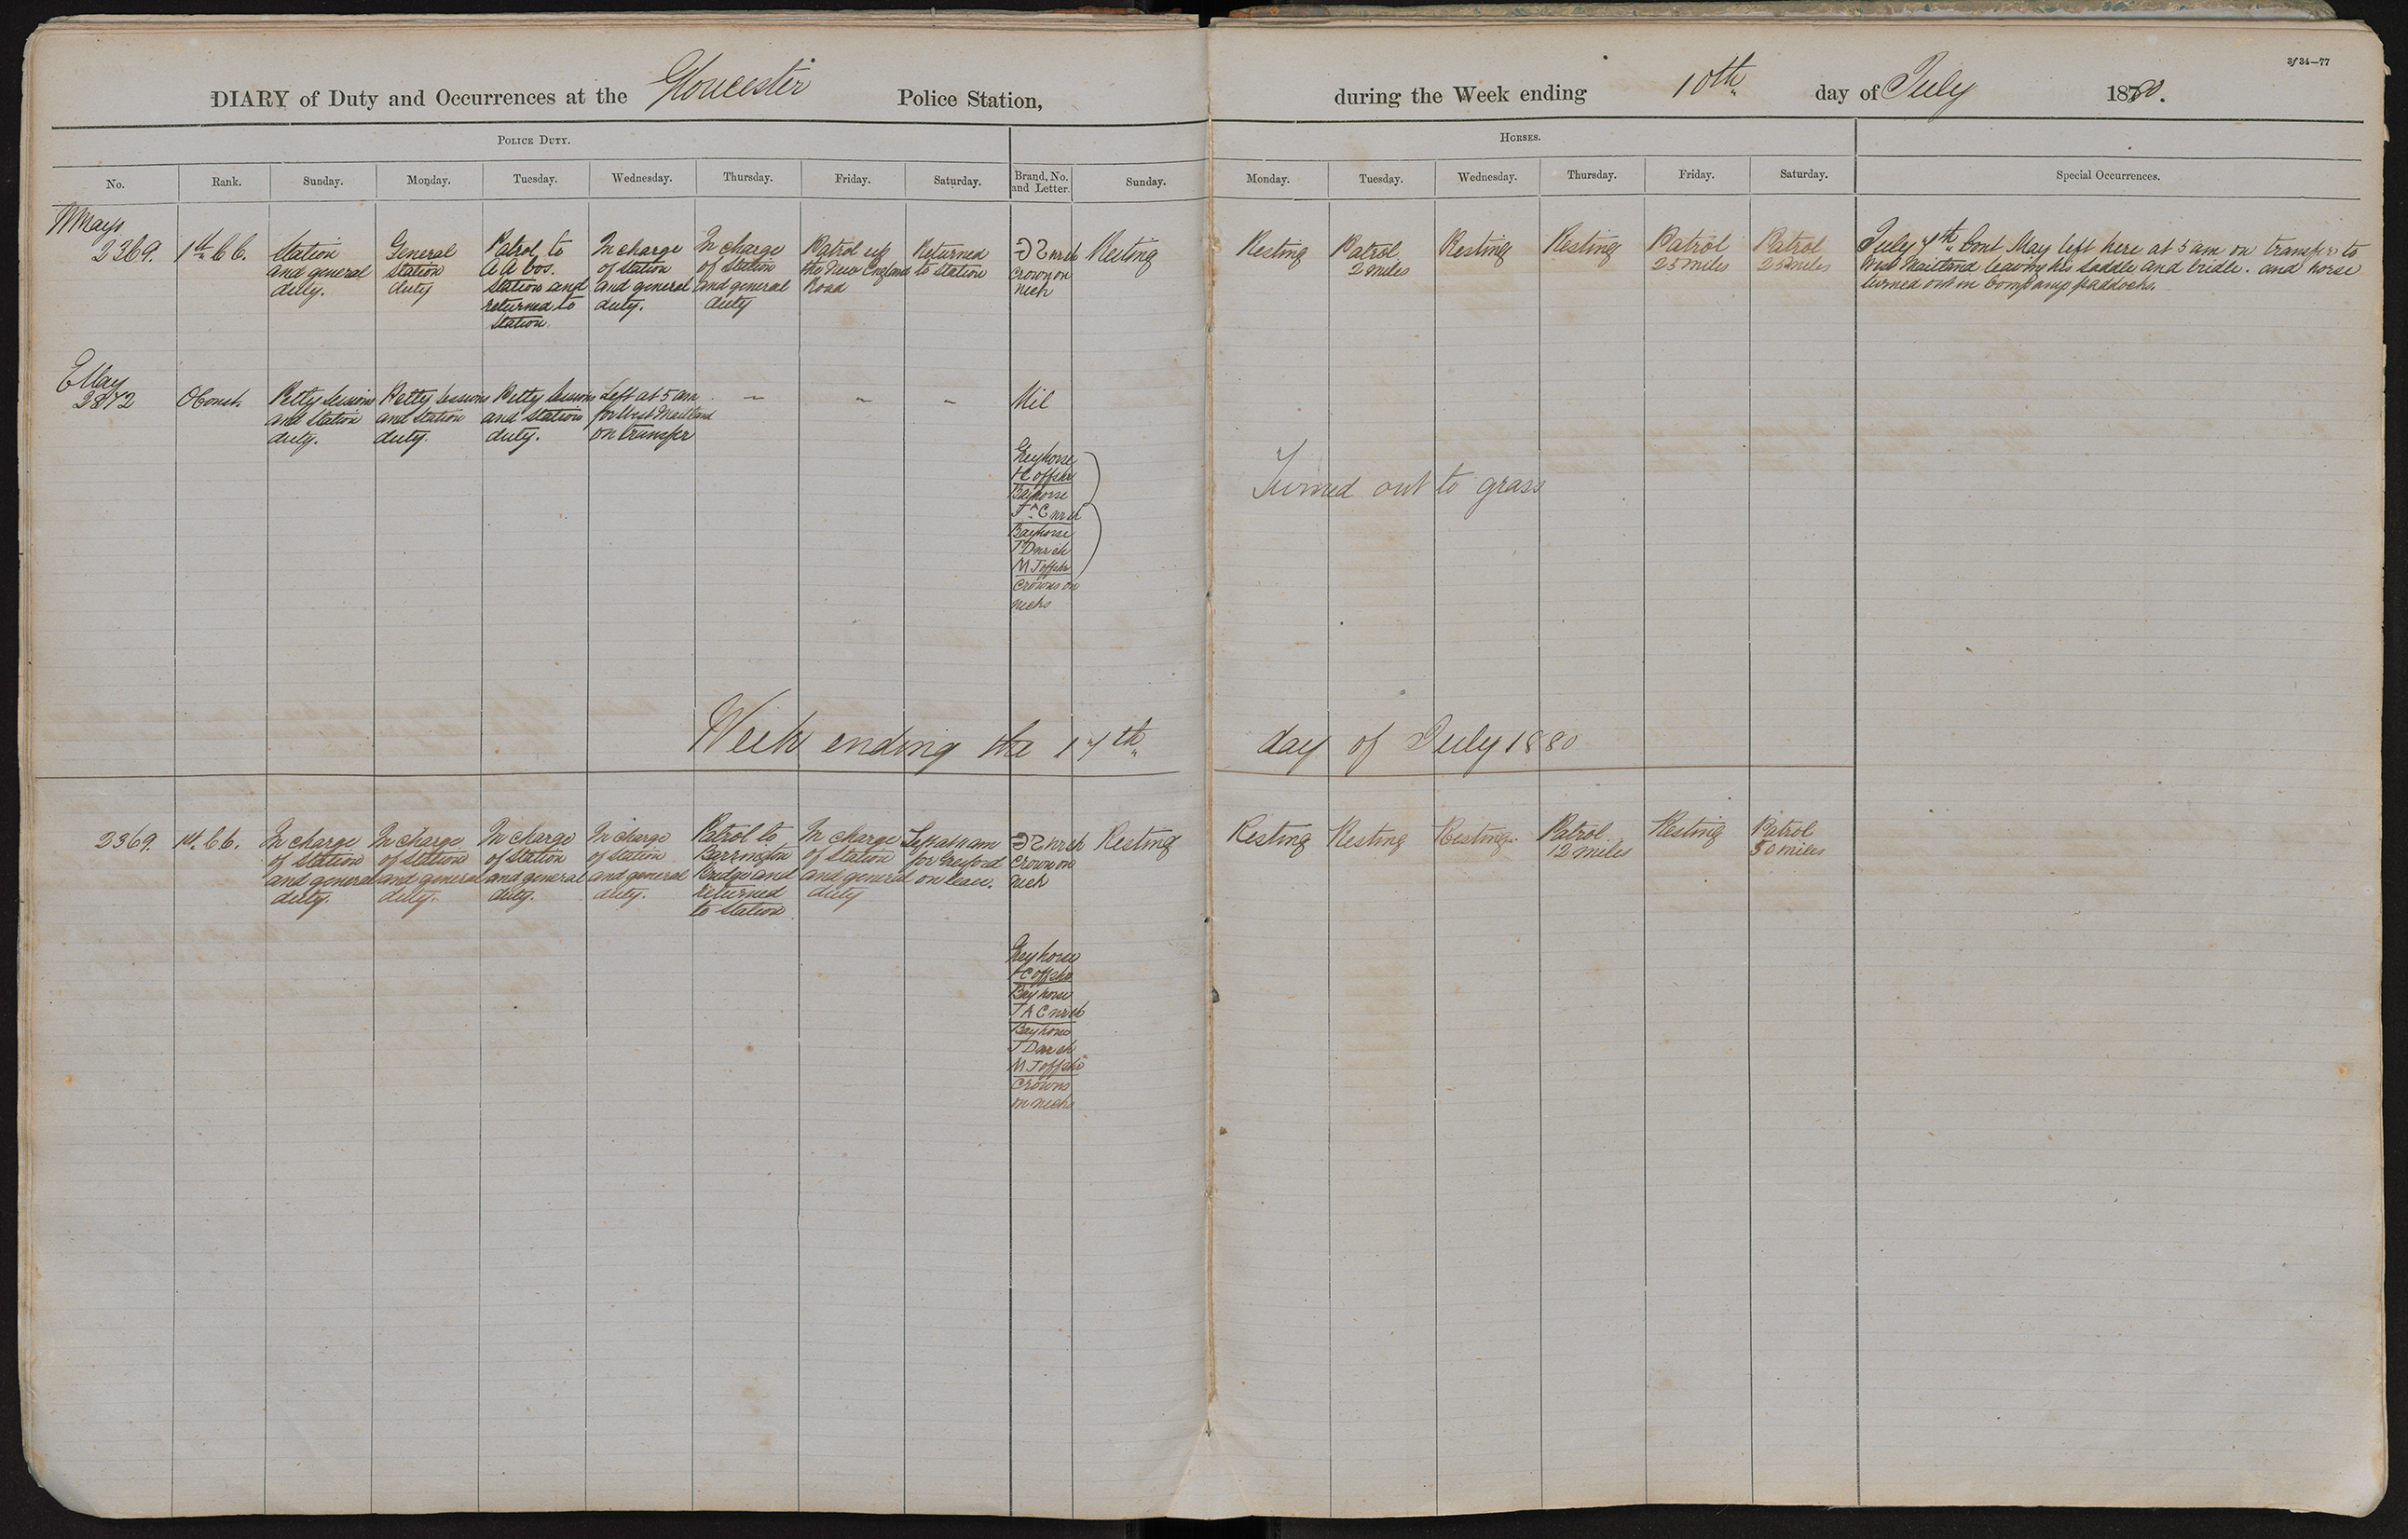 Diary of duty and occurrences at the Gloucester Police Station during the week ending the 10th day of July 1880